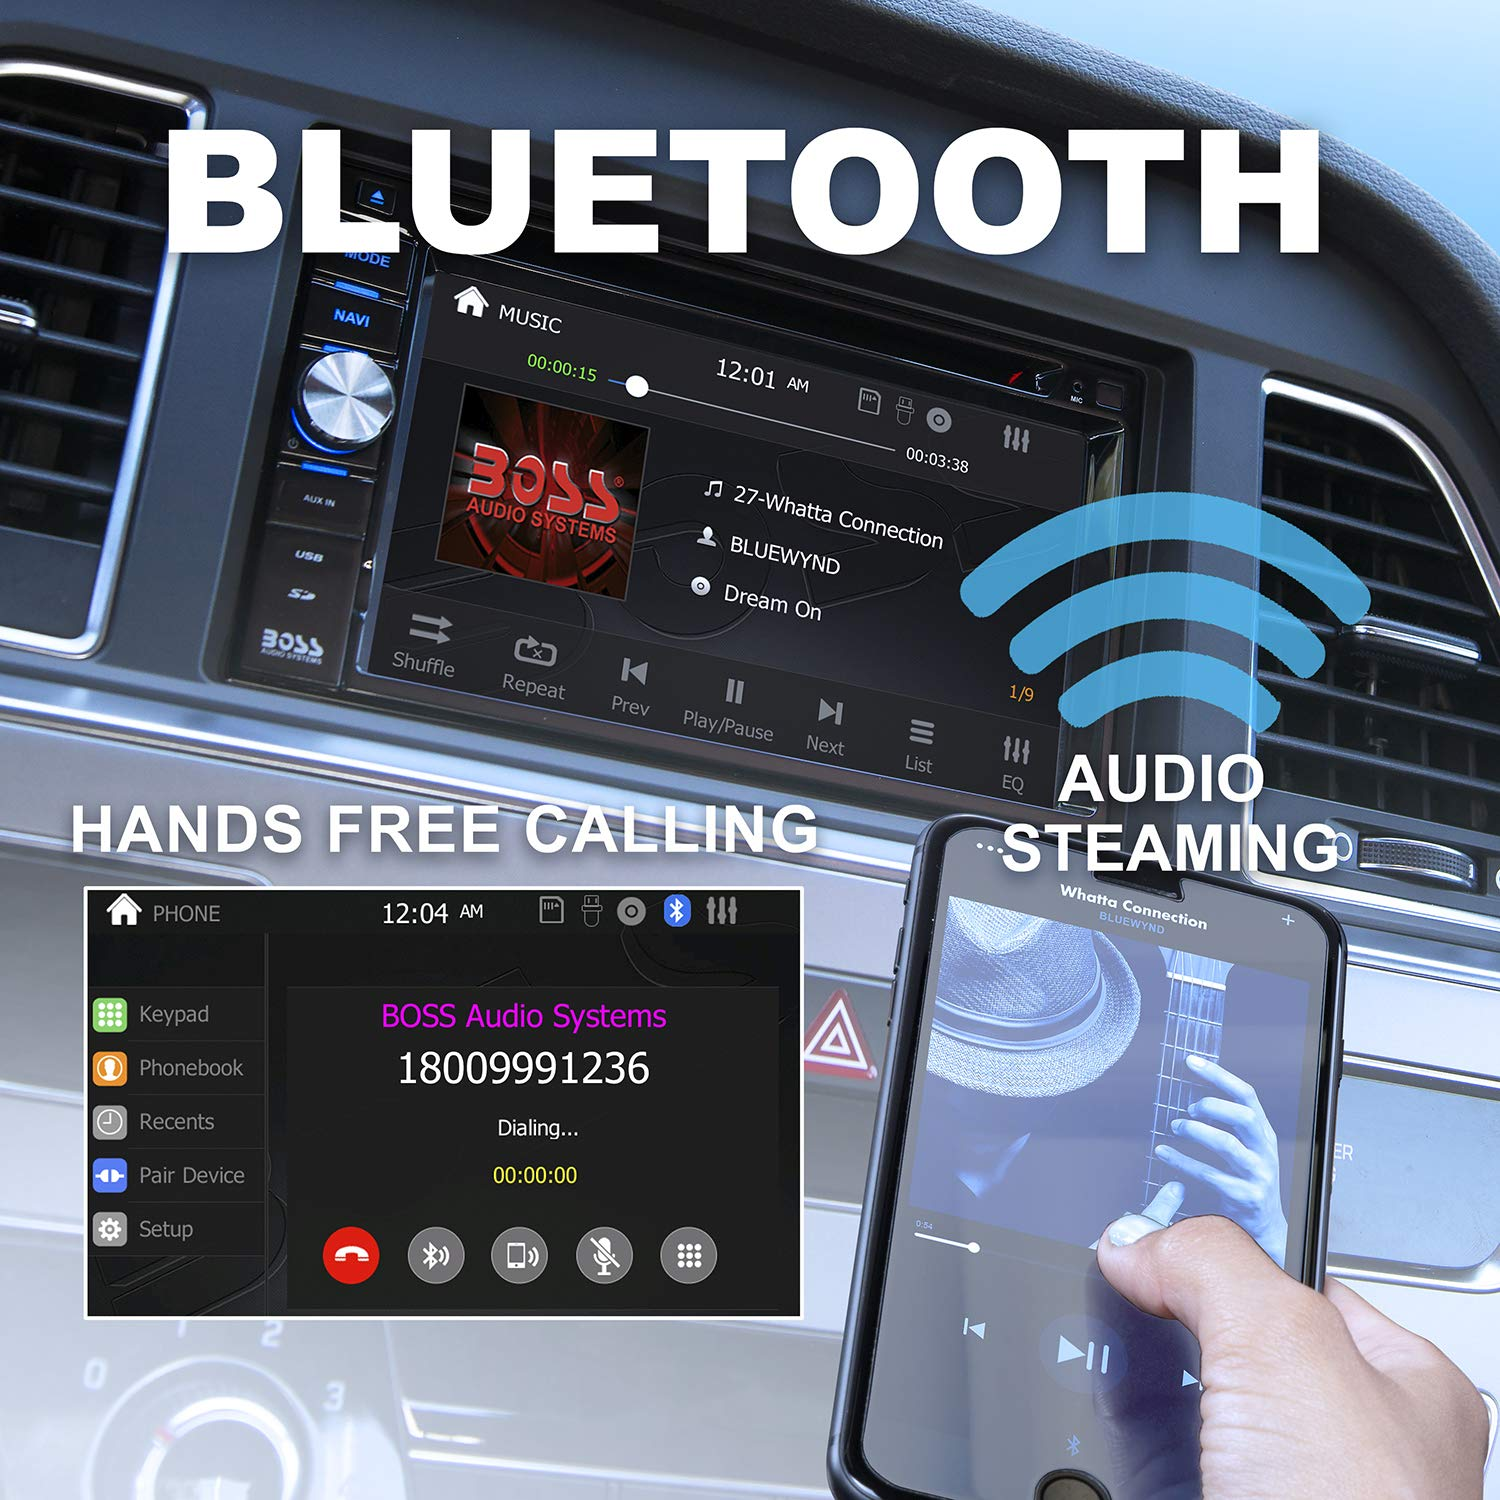 Boss Audio Bv9384nv Navigation Double Din Bluetooth Kia Sedona Parts Diagram Http Wwwkiapartsoverstockcom Showassembly And Calling 62 Inch Lcd Touchscreen Monitor Built In Microphone Mp3 Player